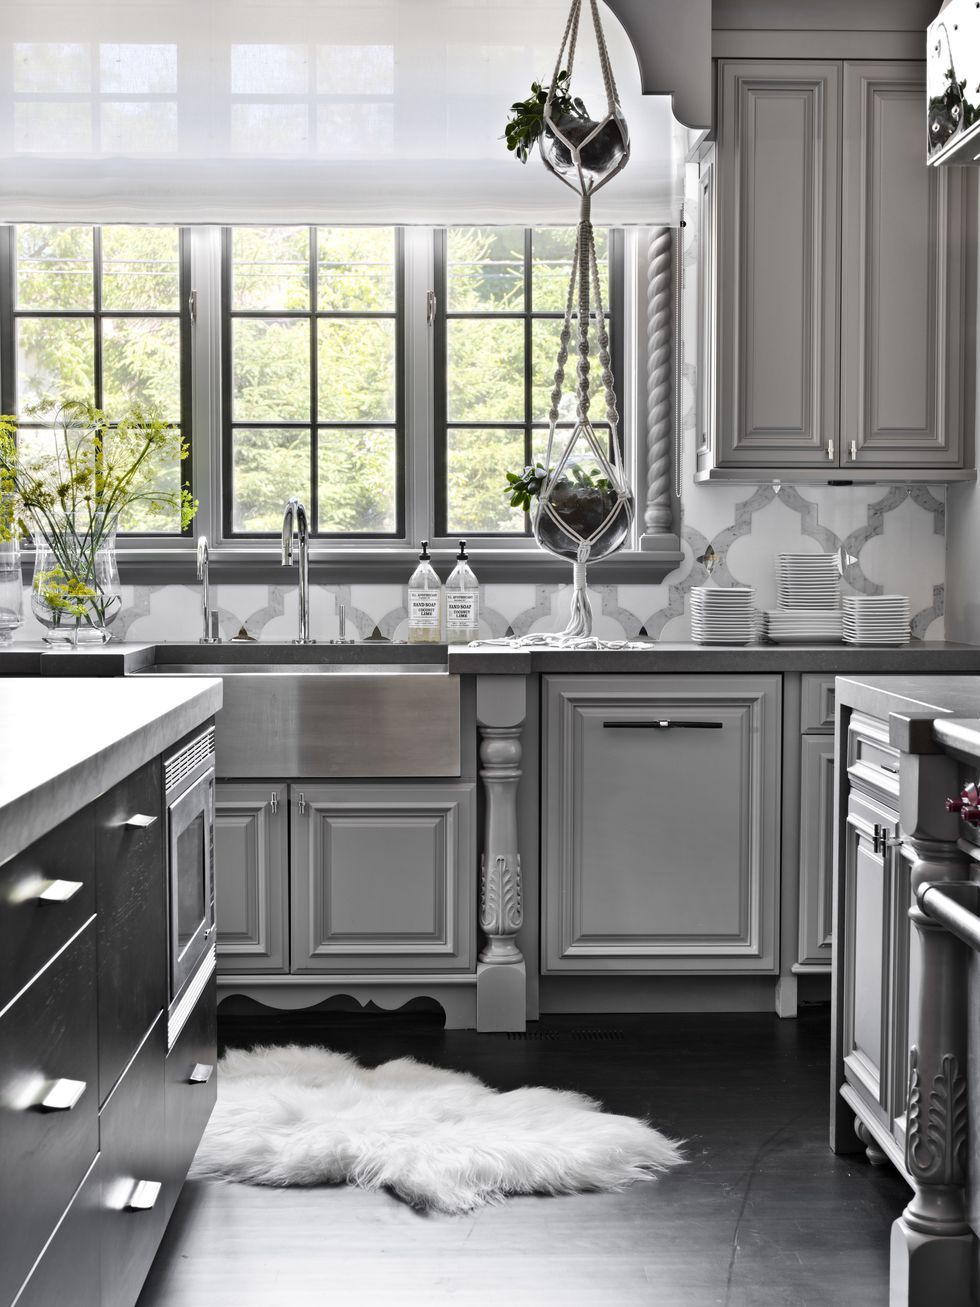 - 26 Gorgeous Kitchen Tile Backsplashes - Best Kitchen Tile Ideas